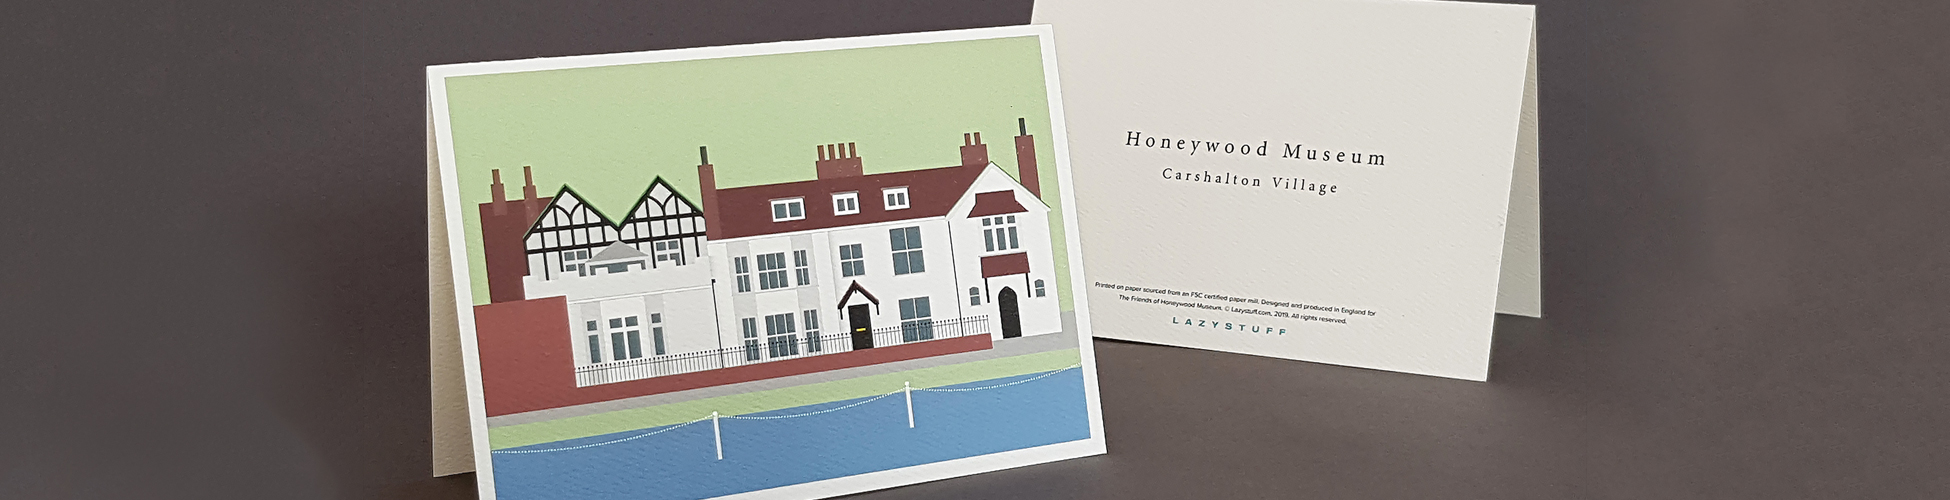 Honeywood Museum Greeting card back and front